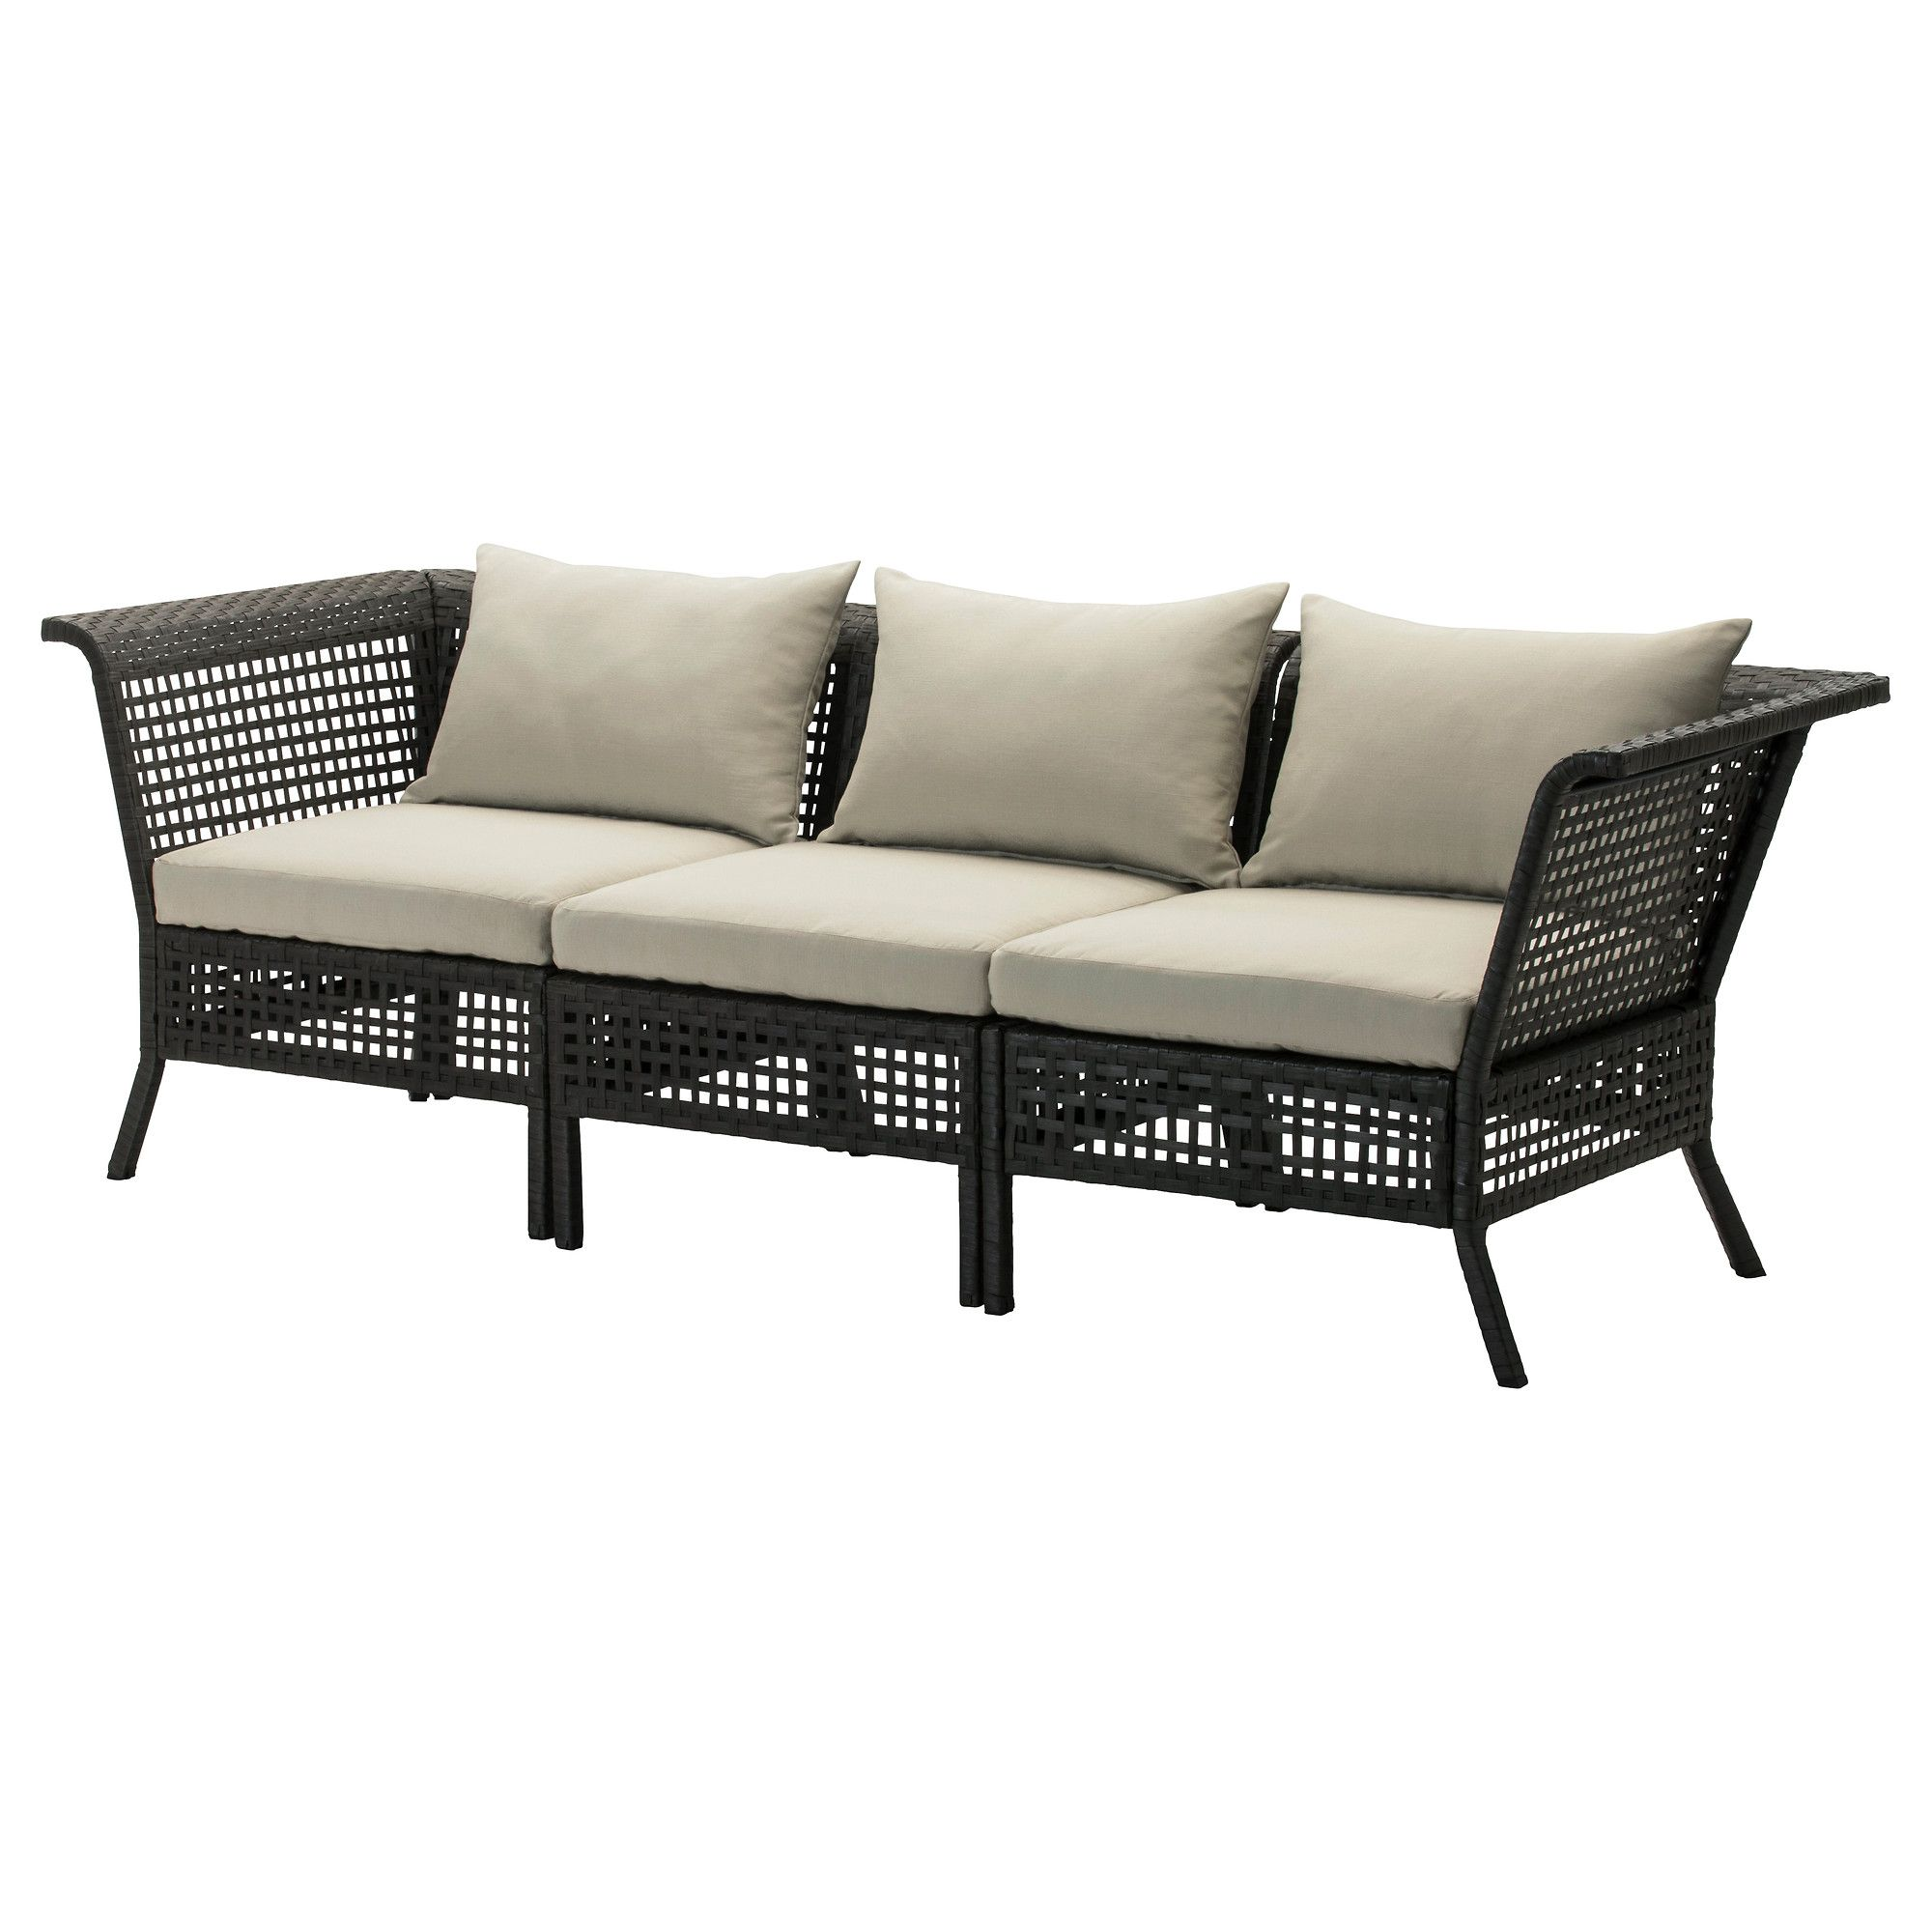 Loungemöbel Outdoor Ikea Loungemöbel Outdoor Ausverkauf Rattan